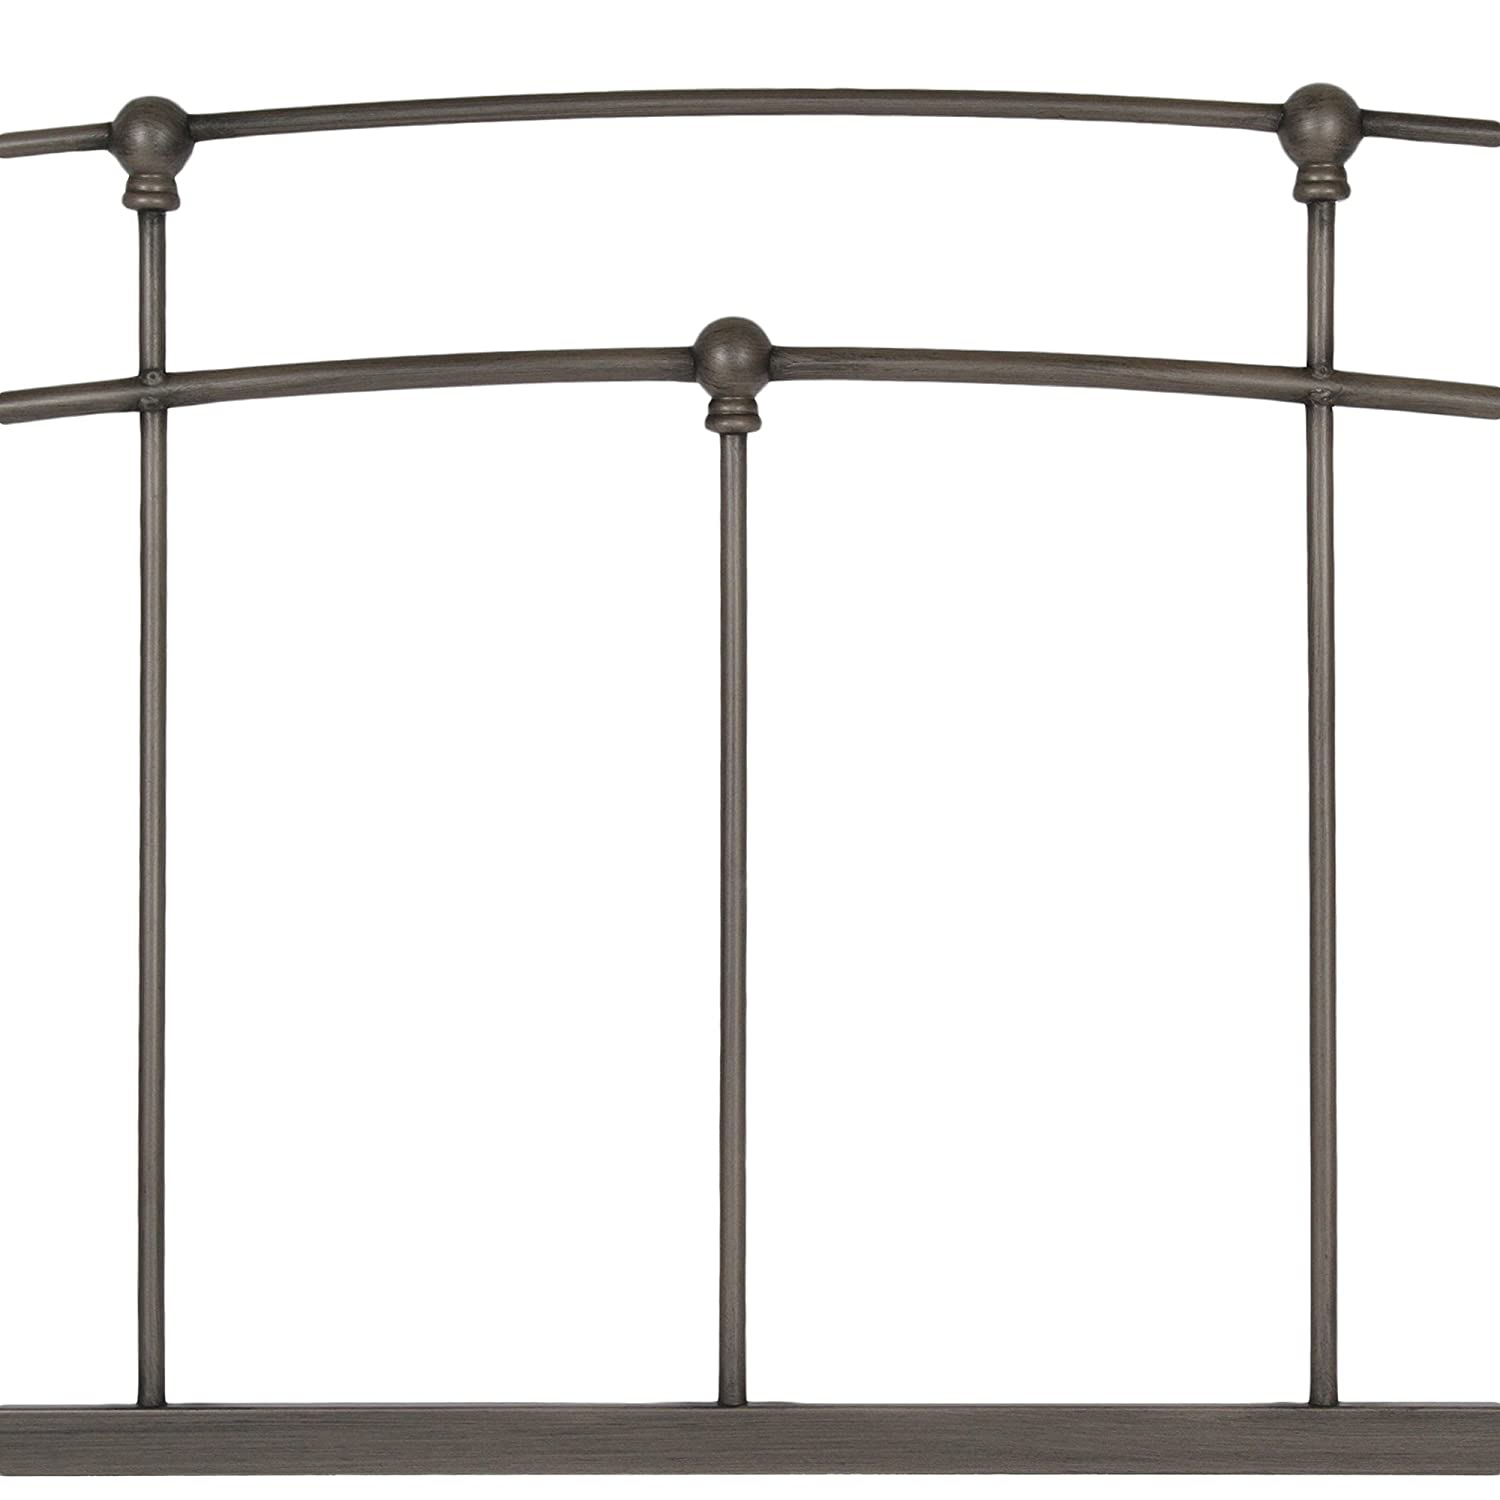 Fenton modern dark brown queen platform bed free shipping today - Amazon Com Fenton Complete Bed With Metal Duo Panels And Globe Finials Black Walnut Finish King Kitchen Dining